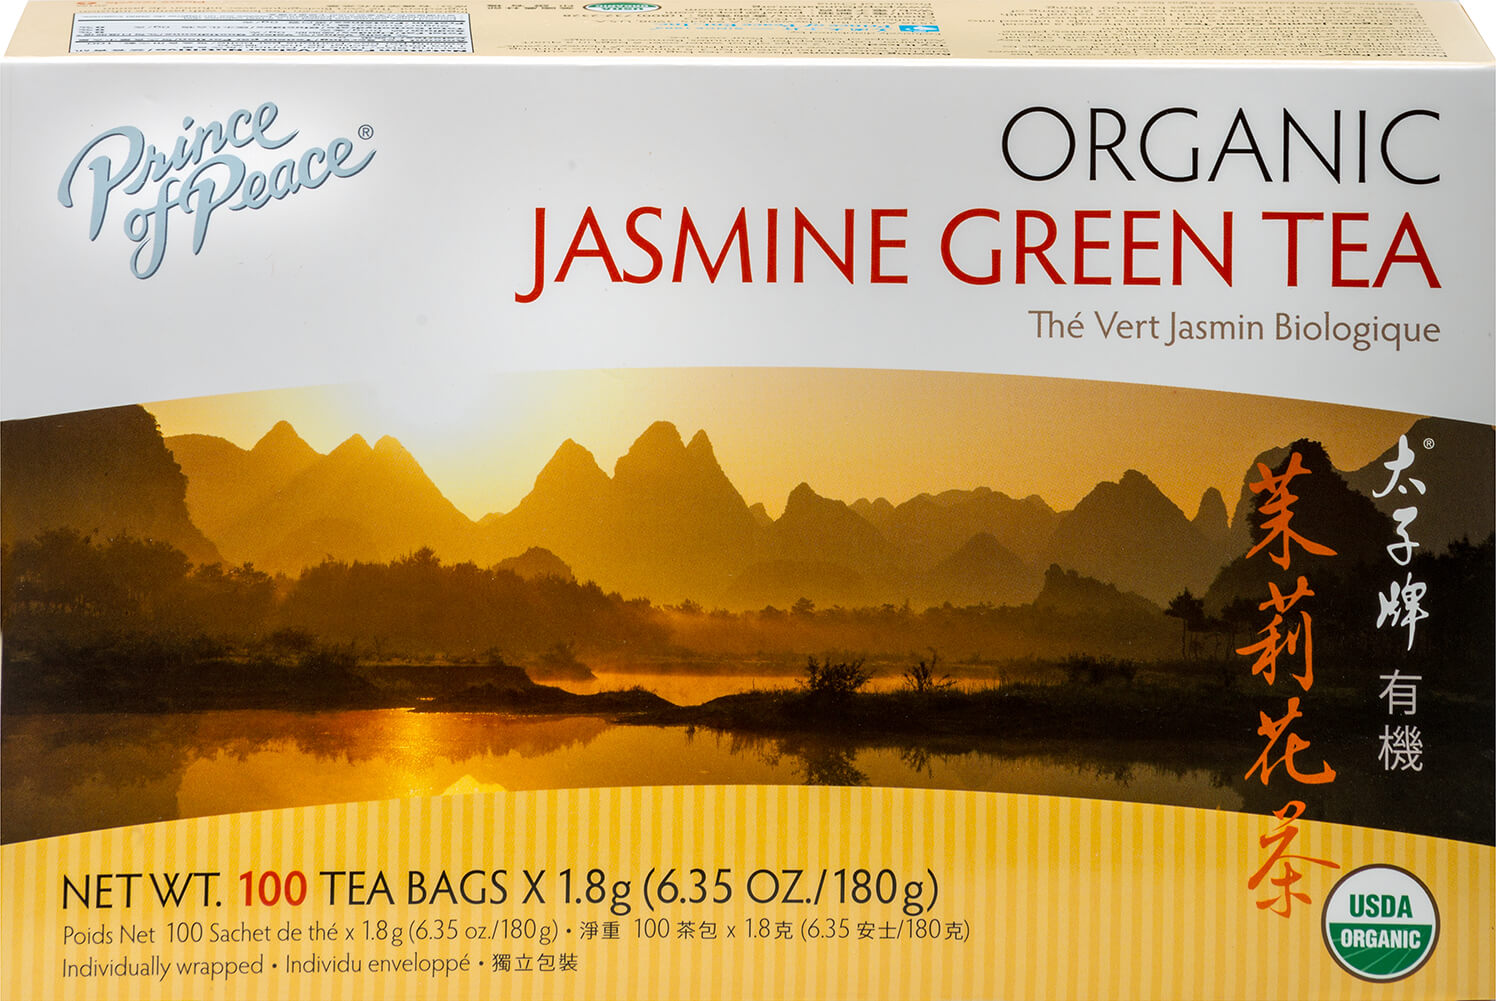 Organic Jasmine Green Tea Thumbnail Alternate Bottle View